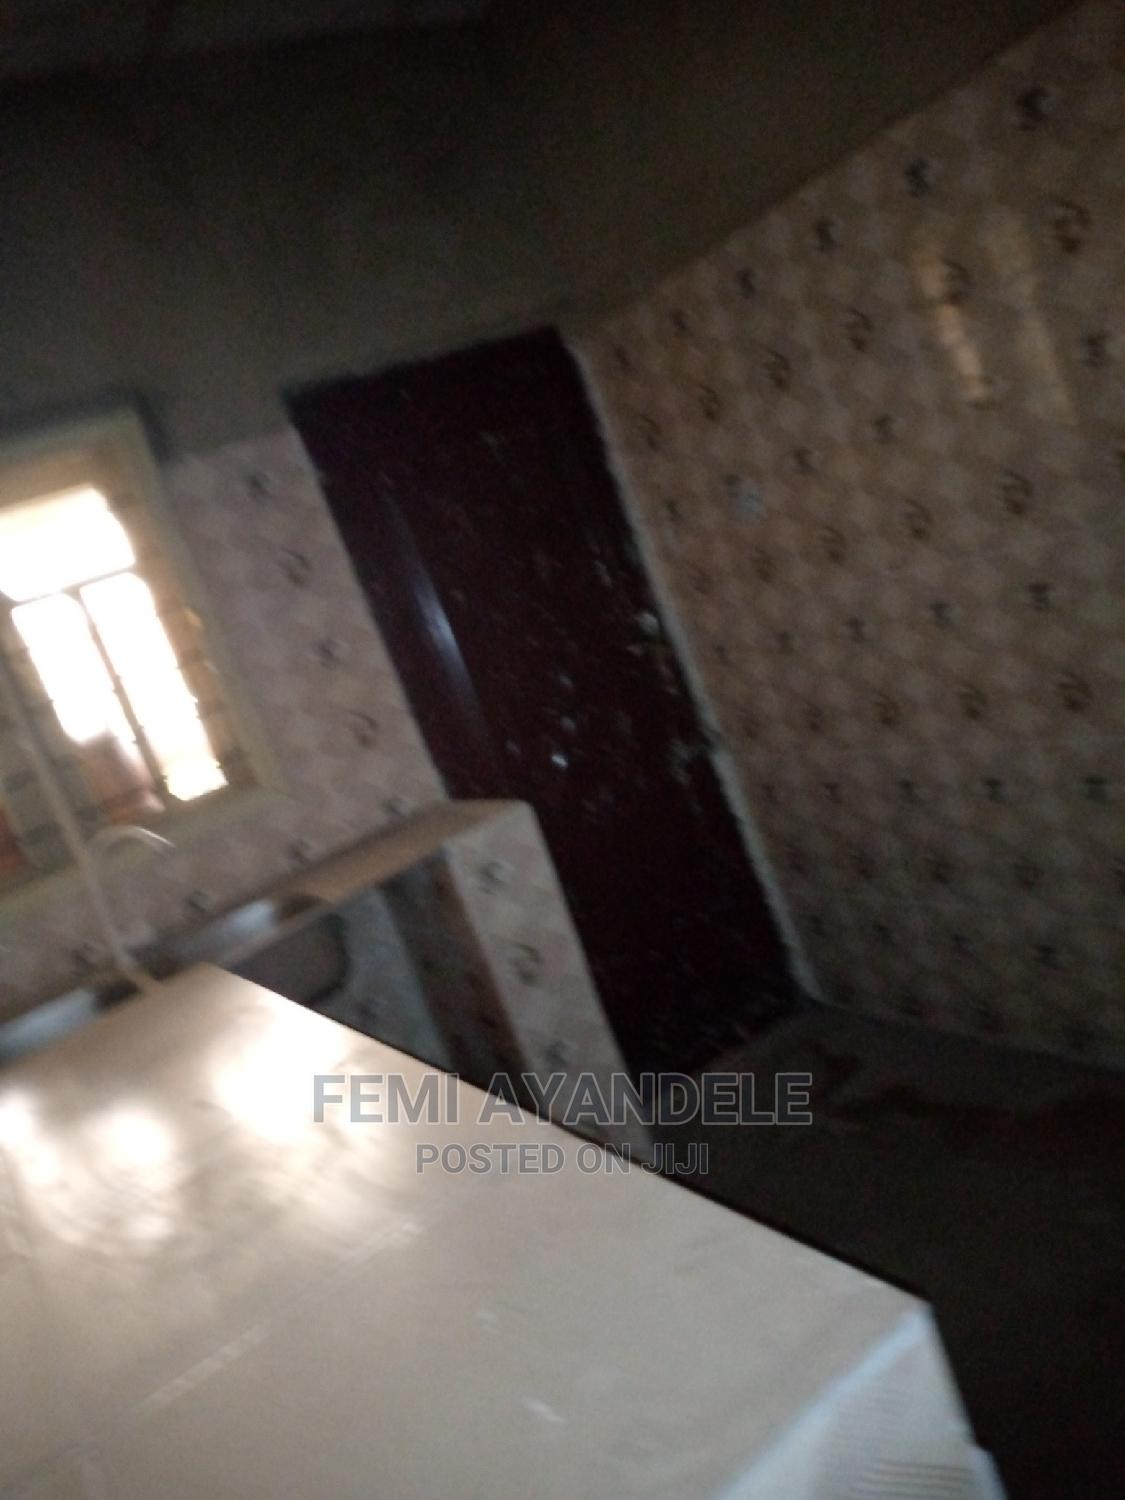 Furnished 6bdrm Bungalow in Fashola Estate, Ikorodu for Sale   Houses & Apartments For Sale for sale in Ikorodu, Lagos State, Nigeria